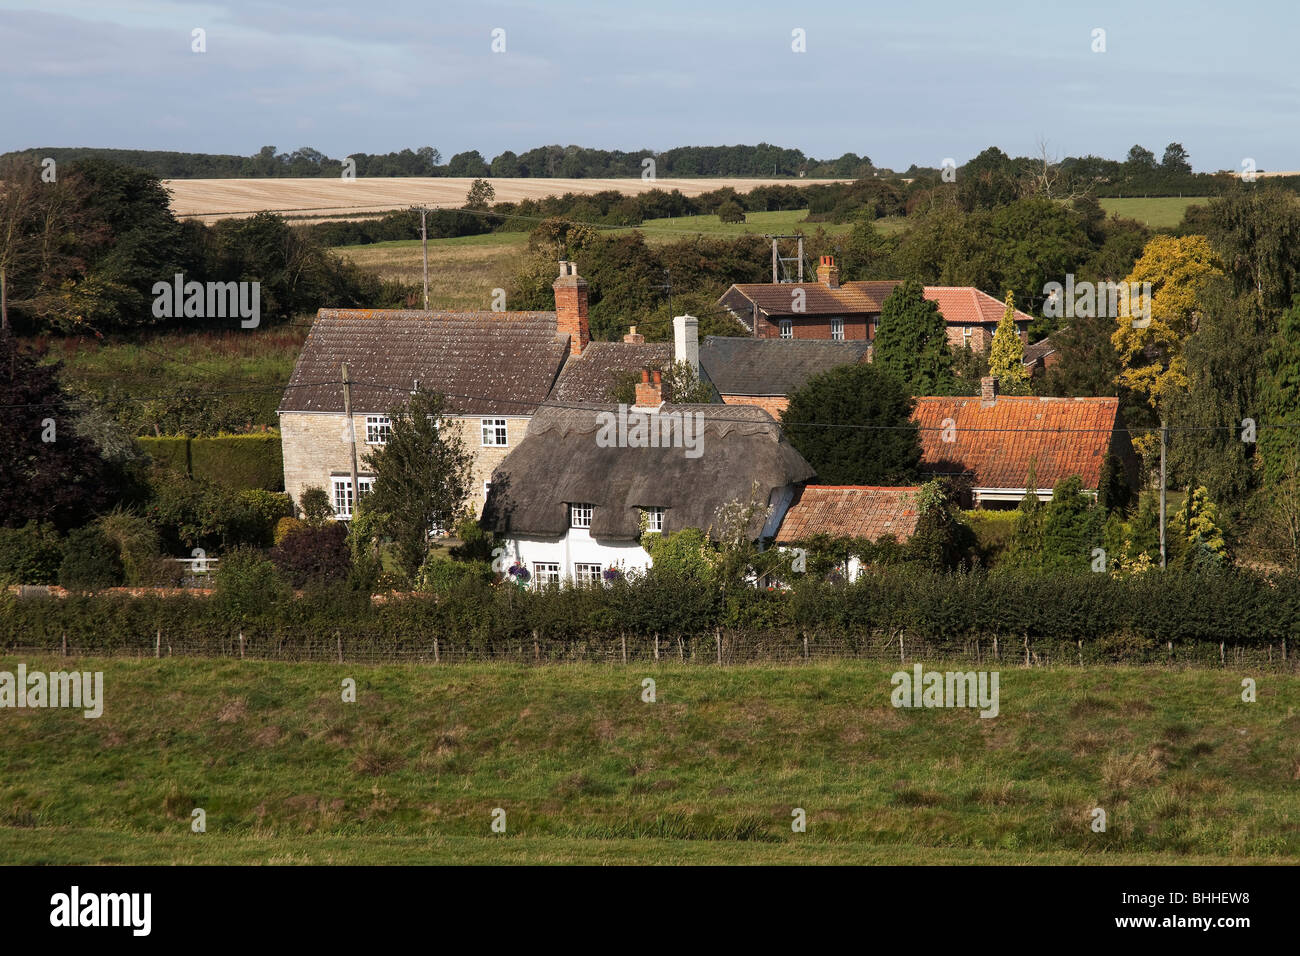 village villages hamlet houses homes property real estate typical typically english community yelden yielden bedfordshire - Stock Image